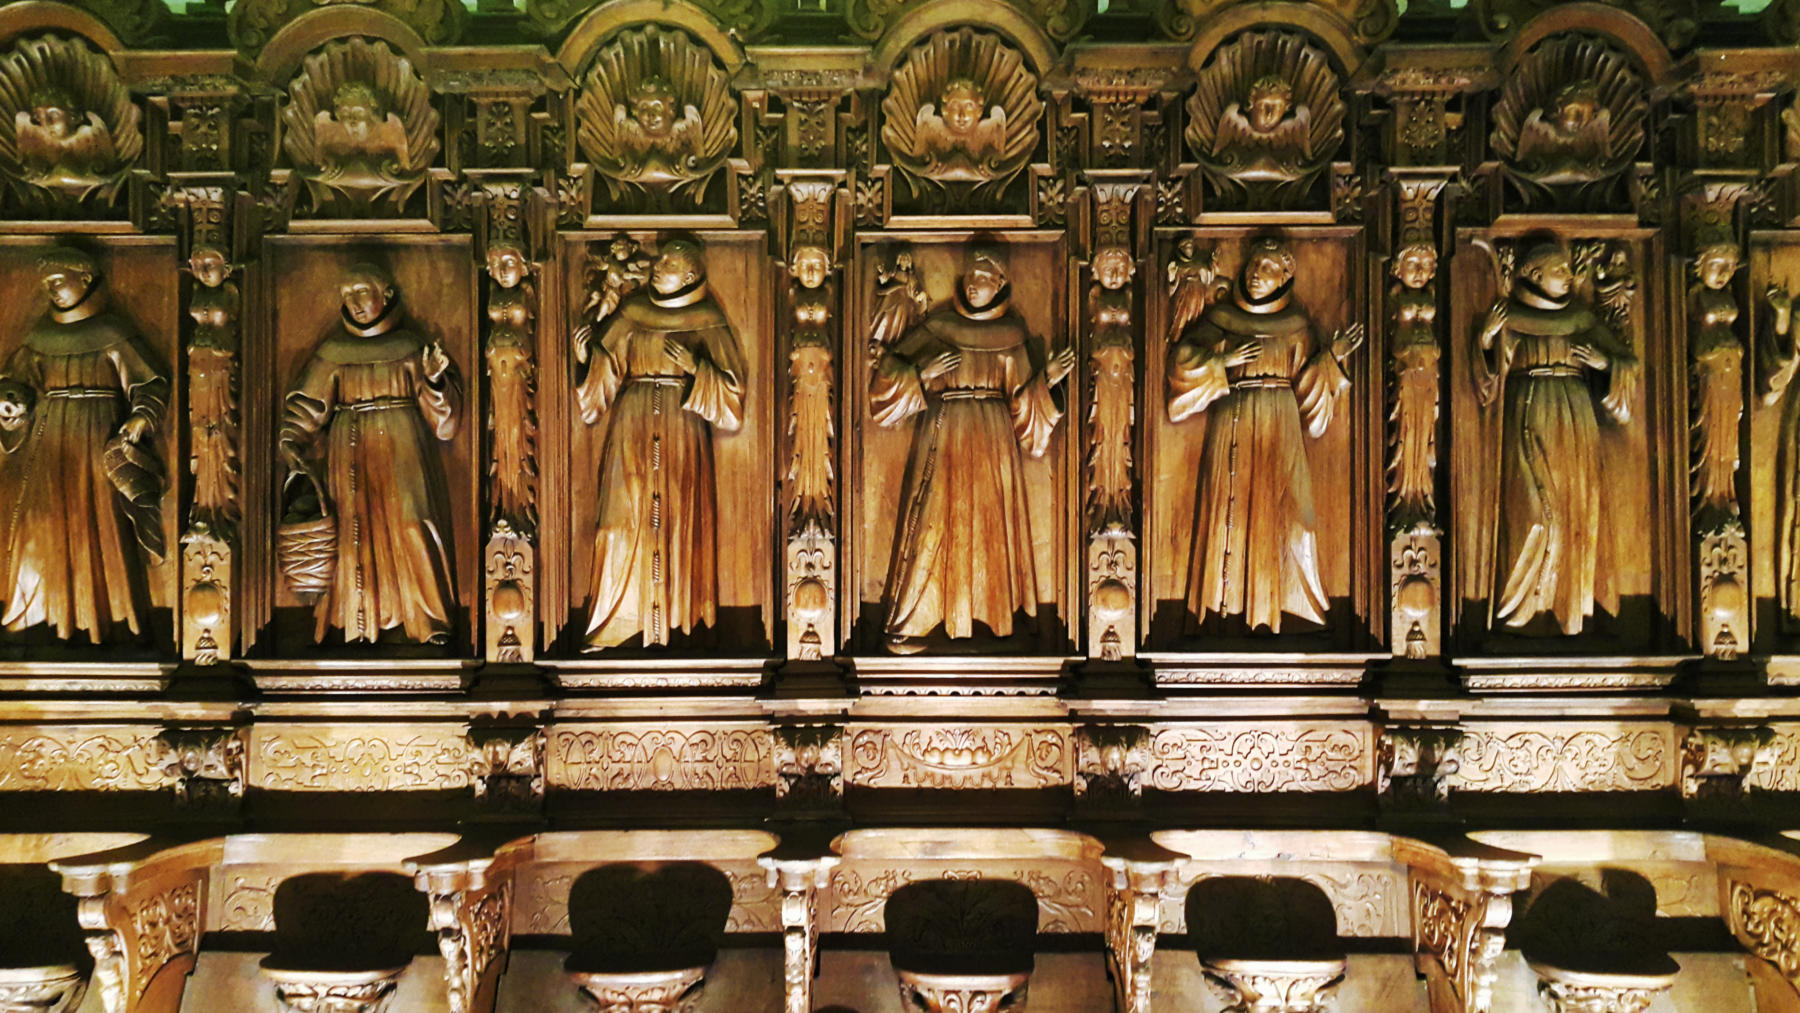 Misericordia in the Choir